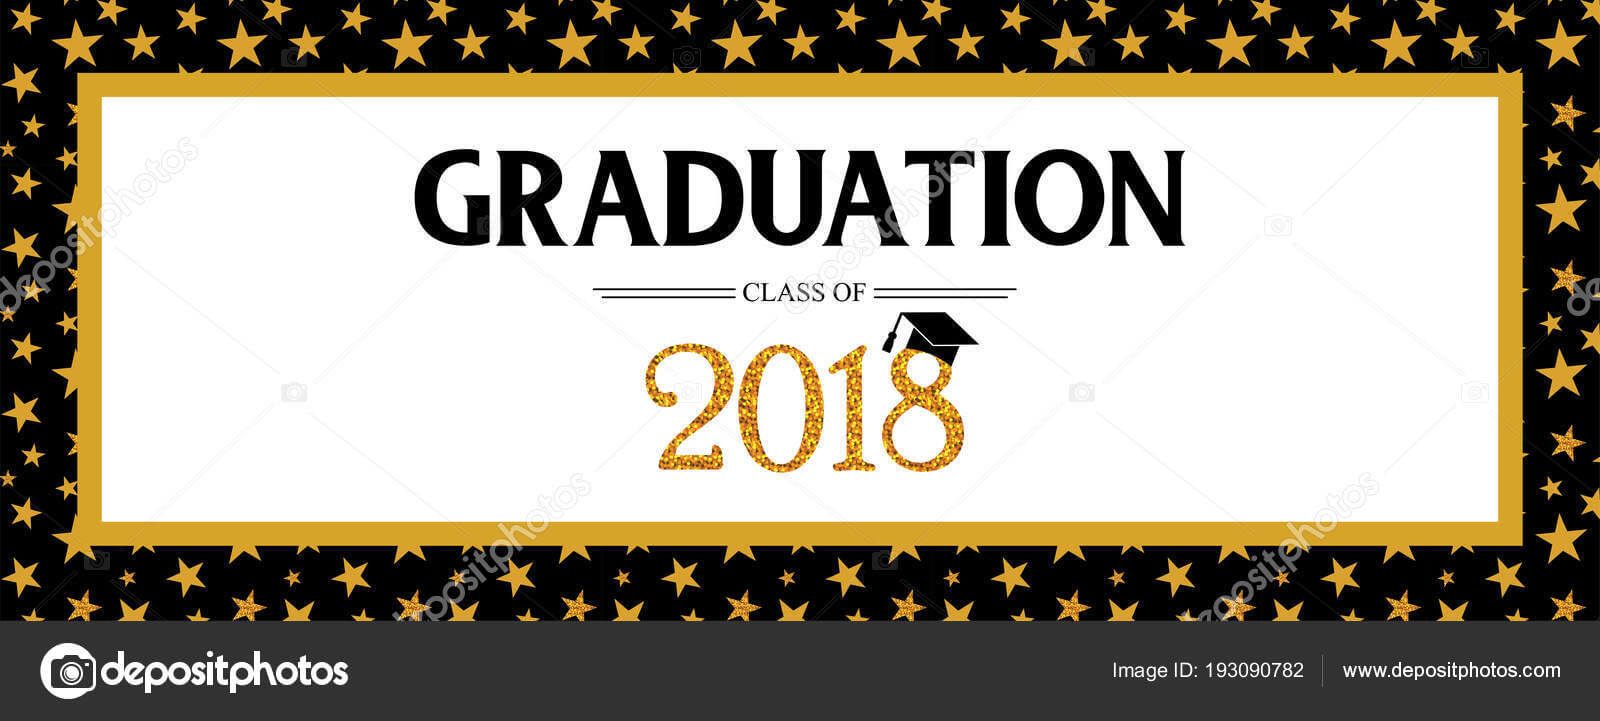 Graduation Banner Template | Graduation Class Of 2018 With Regard To Graduation Banner Template